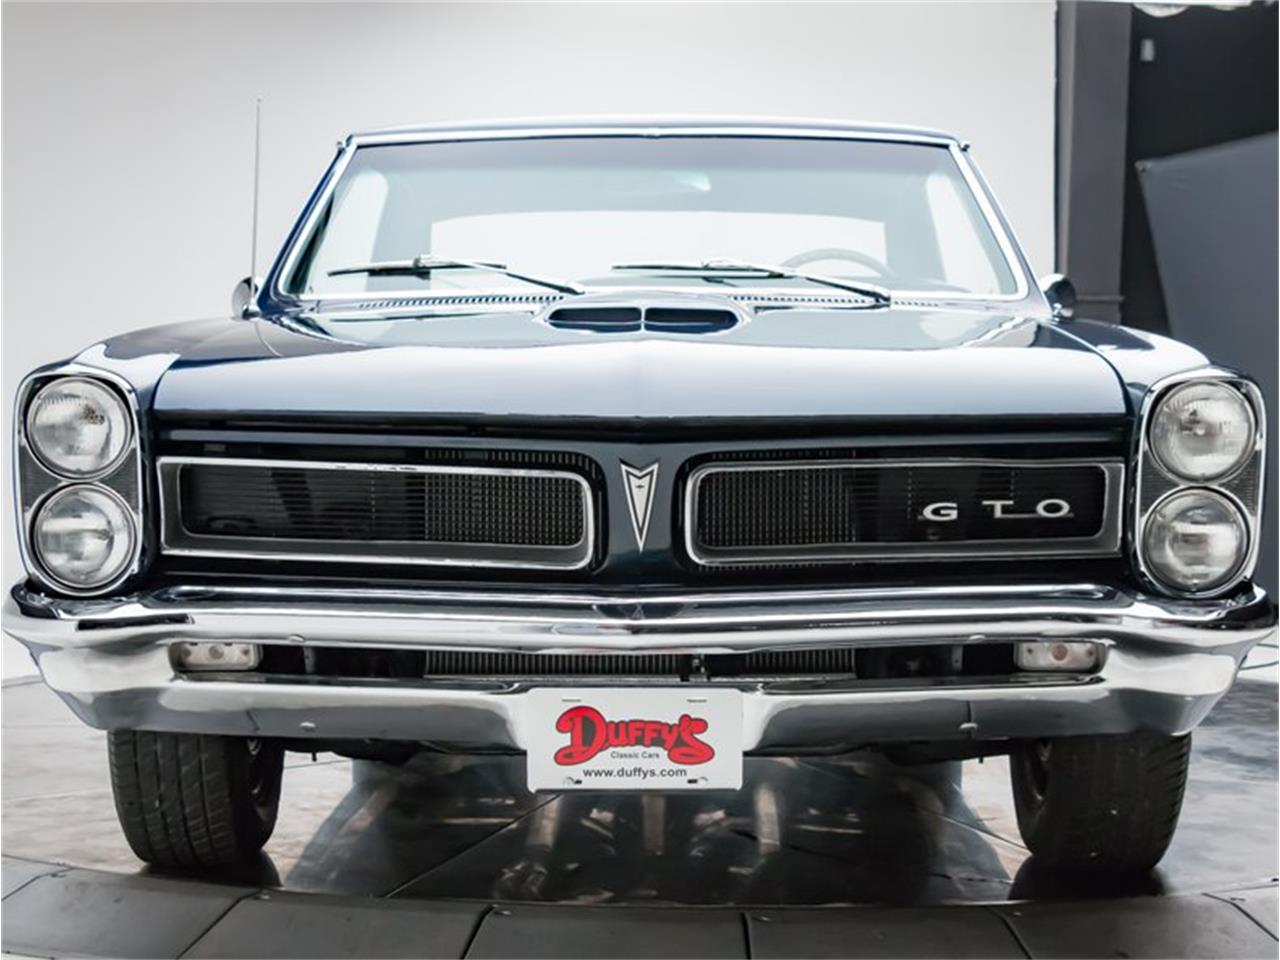 Large Picture of Classic '65 Pontiac GTO - $37,950.00 - N6UR